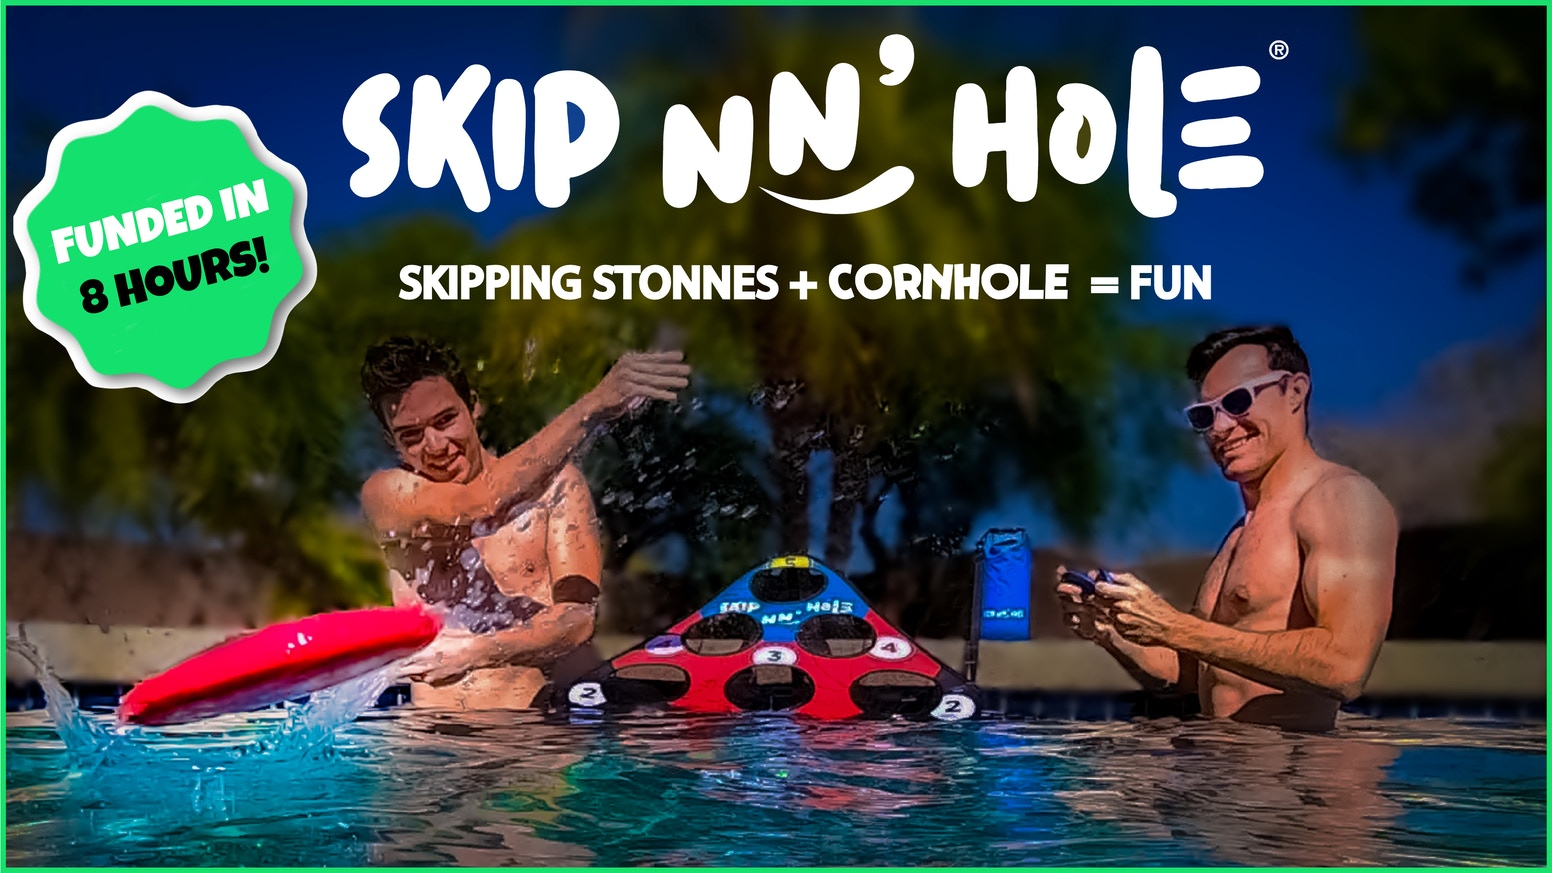 Skip the heat while skipping Stonnes! Fun for all ages, take Skip nn' Hole with you to all of your water destinations!